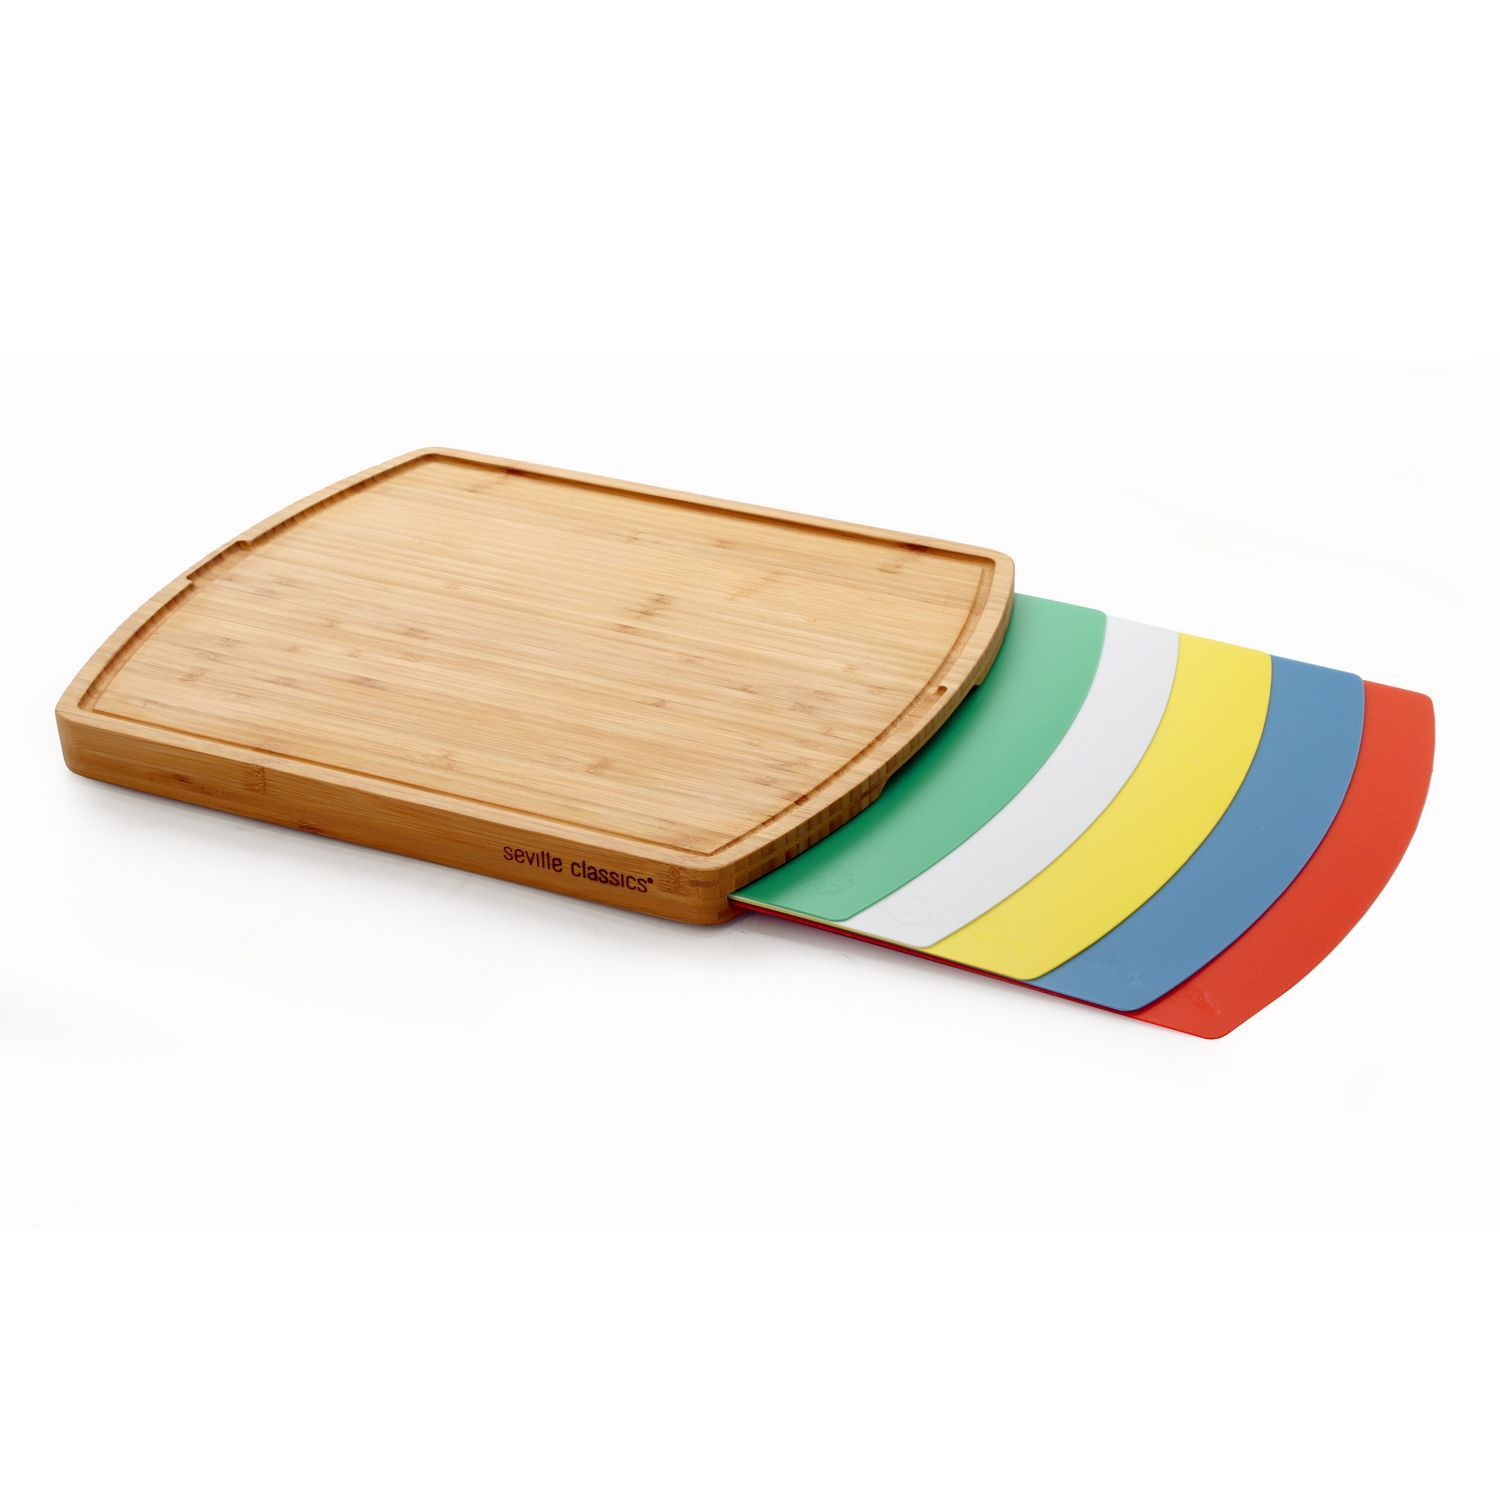 1500x1500 Seville Classics Multicolor Bamboo Cutting Board With Mats